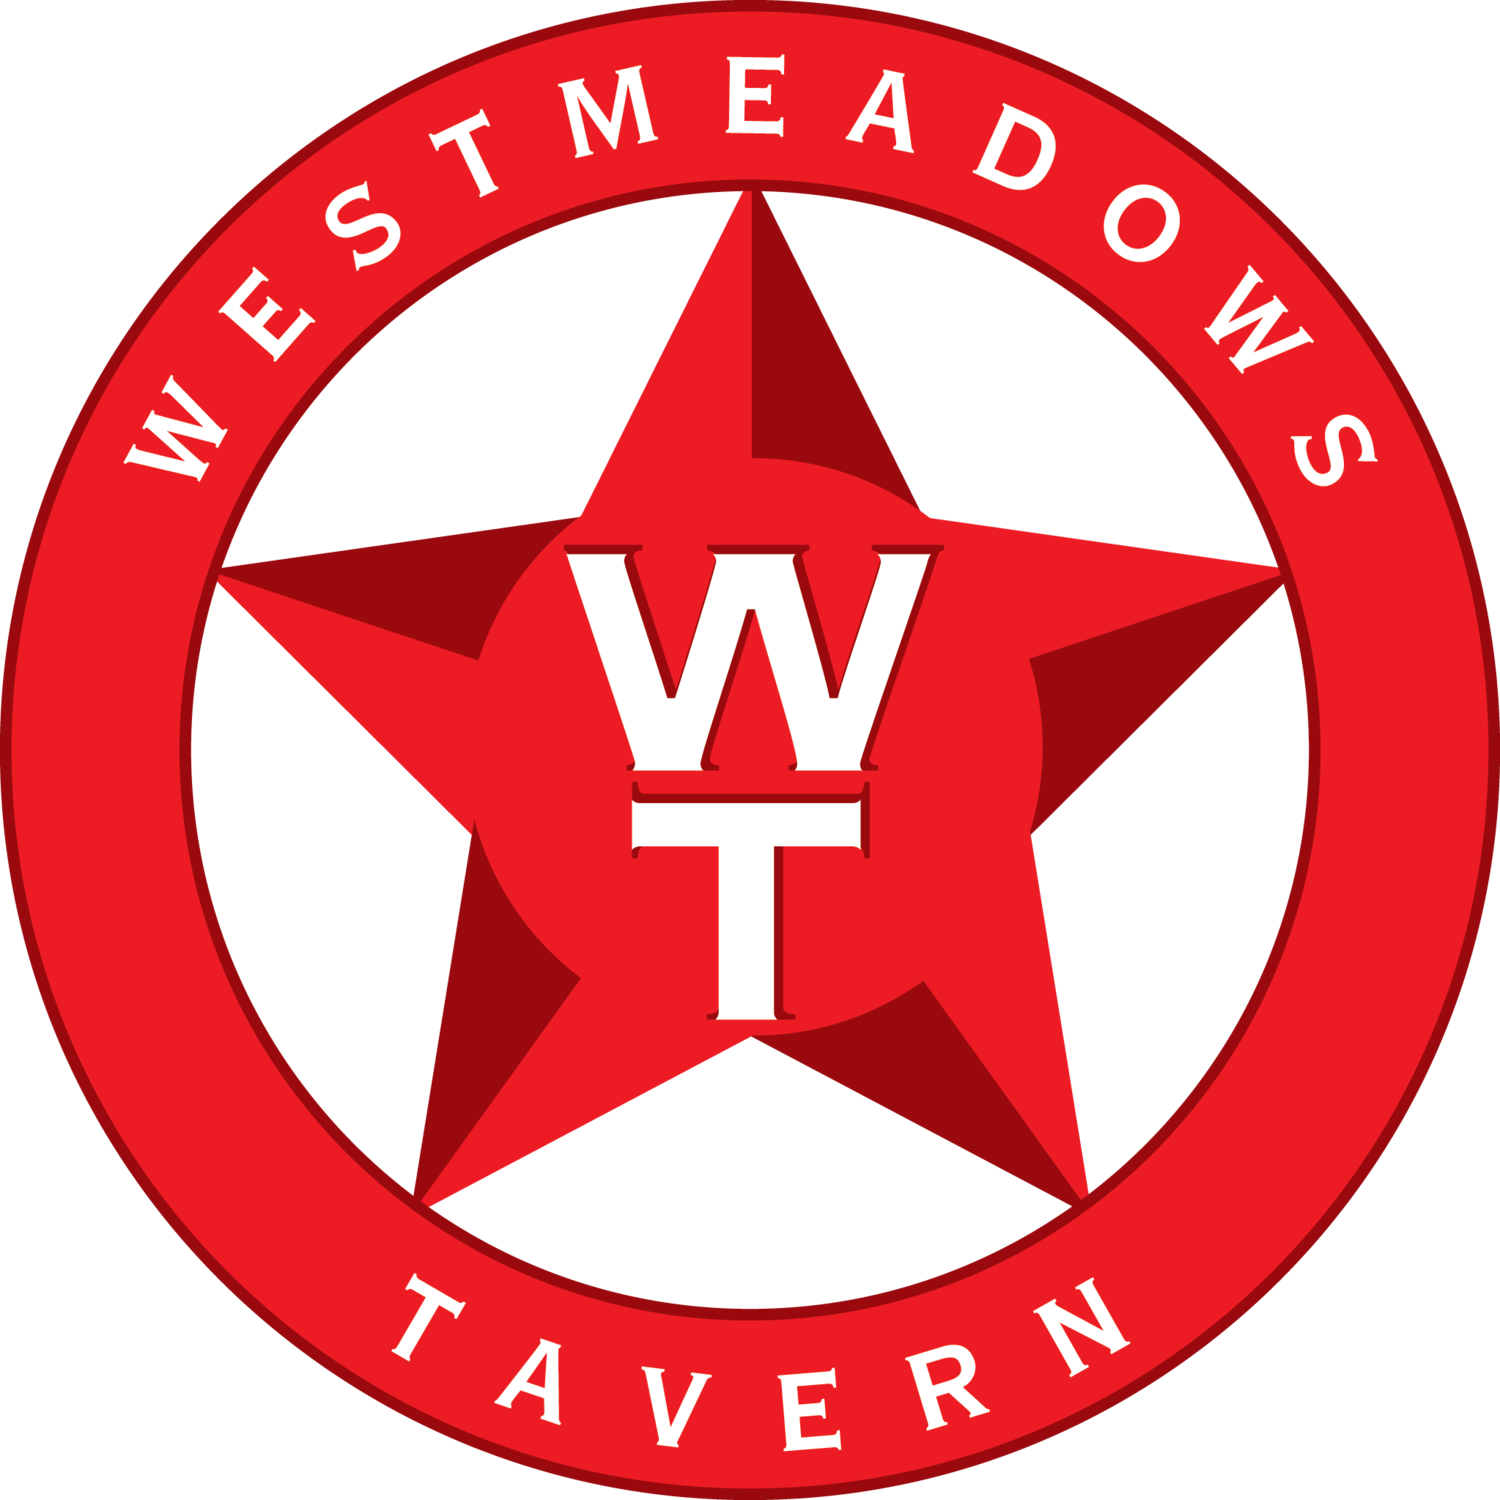 Westmeadows Tavern, Westmeadows, VIC